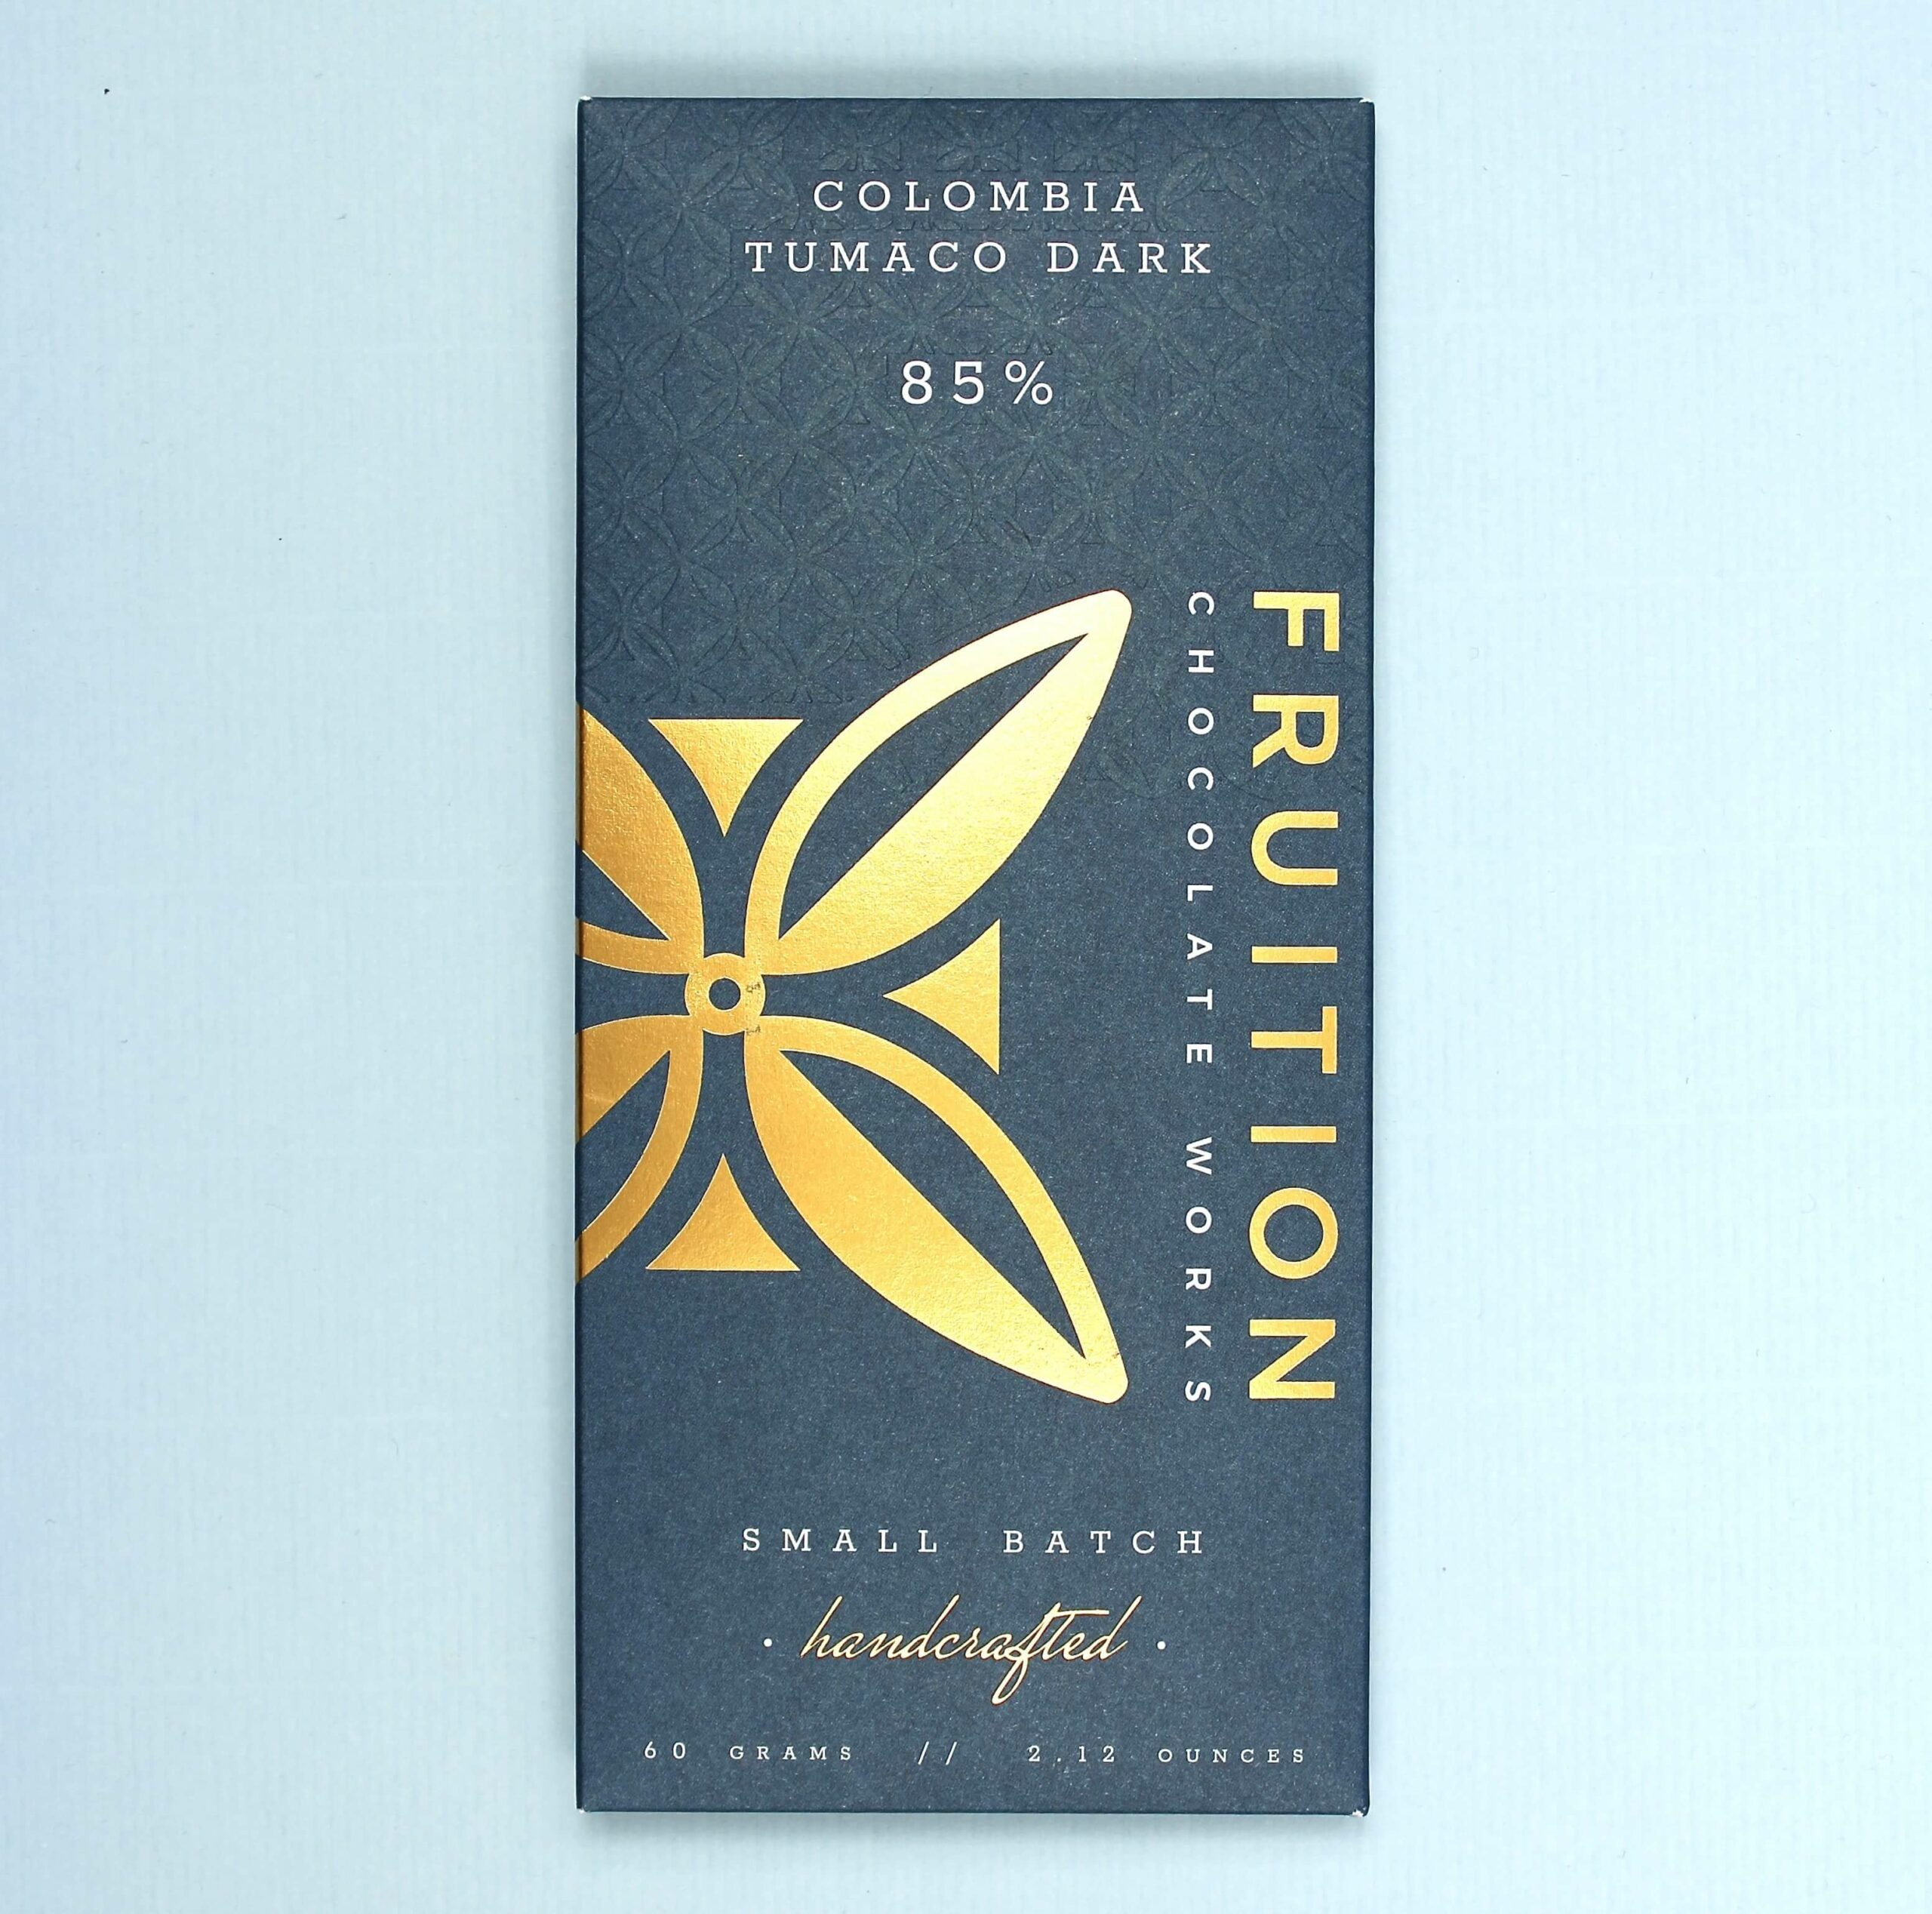 fruition chocolate works colombia tumaco dark 85